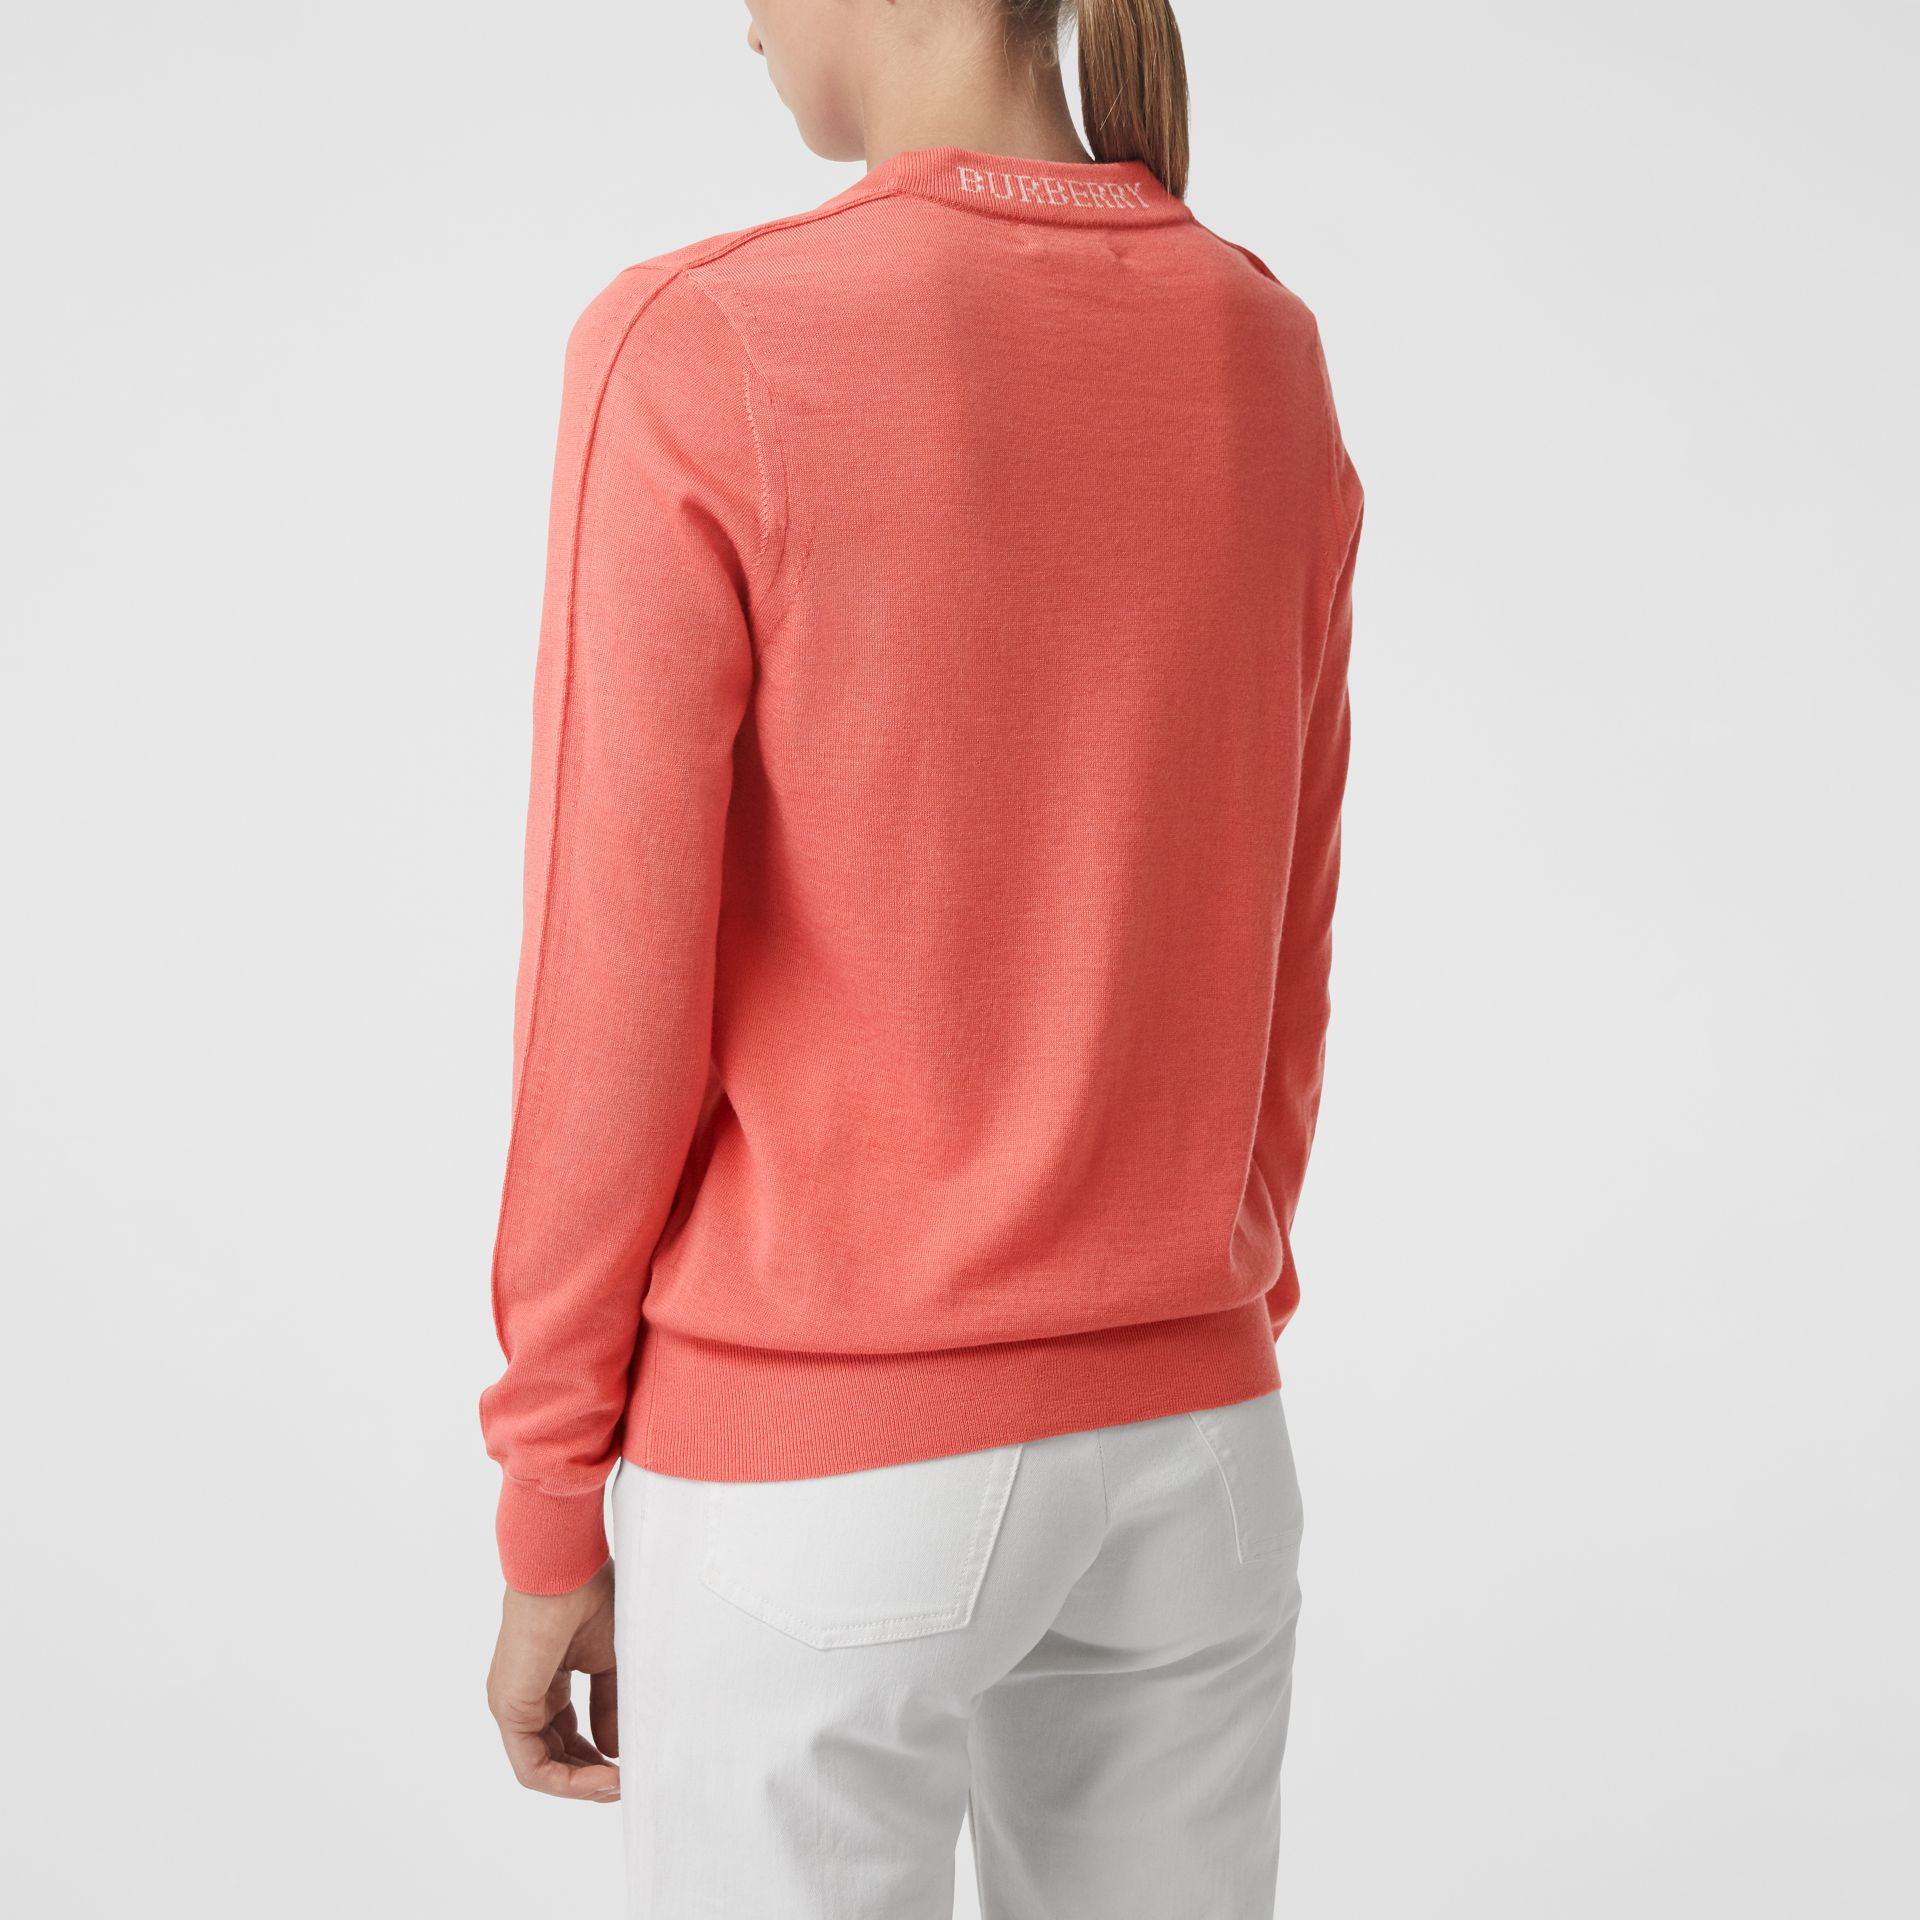 Merino Wool Crew Neck Sweater in Coral - Women | Burberry United States - gallery image 2